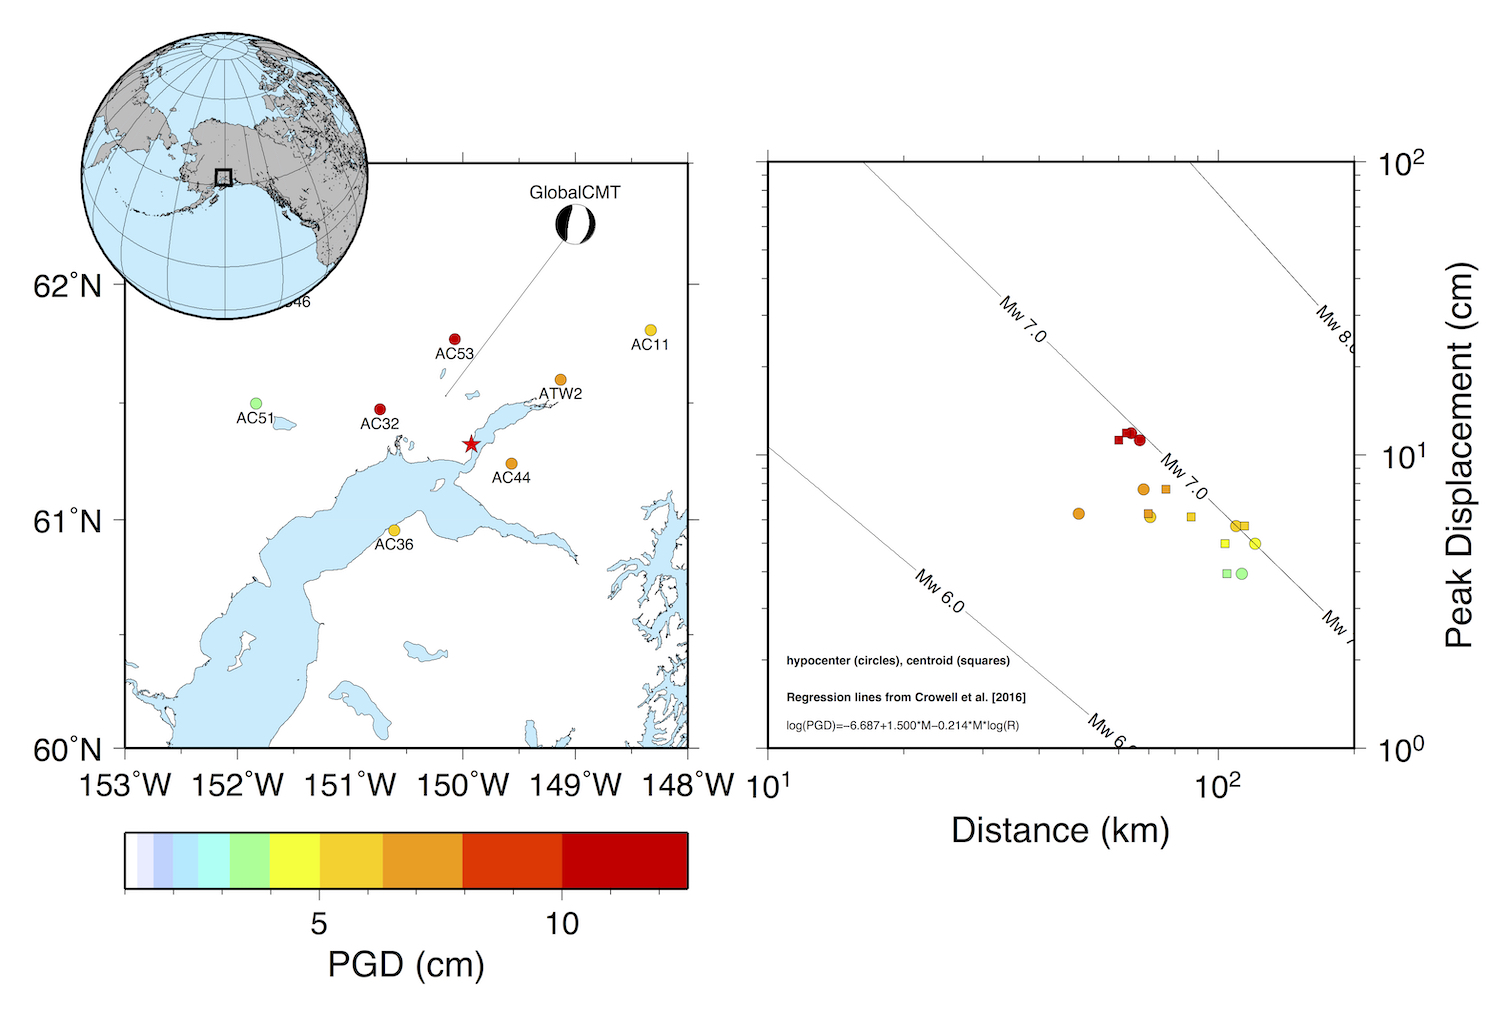 Peak ground displacement scaling using high-rate GPS waveforms recorded during the November 30, 2018 M7 Anchorage earthquake. Seven nearby stations were processed using IGS Rapid orbits and the TRACK software package with fixed station AB33, about 650 km north of the earthquake. Peak ground displacement scaling relates the peak displacements to magnitude and distance, and coefficients have been found through global analyses of large earthquakes. Using the coefficients of Crowell et al. [2016], the average PGD magnitude is M6.9 using either hypocentral or centroid distance. (Figure from Pacific NW Seismic Network).